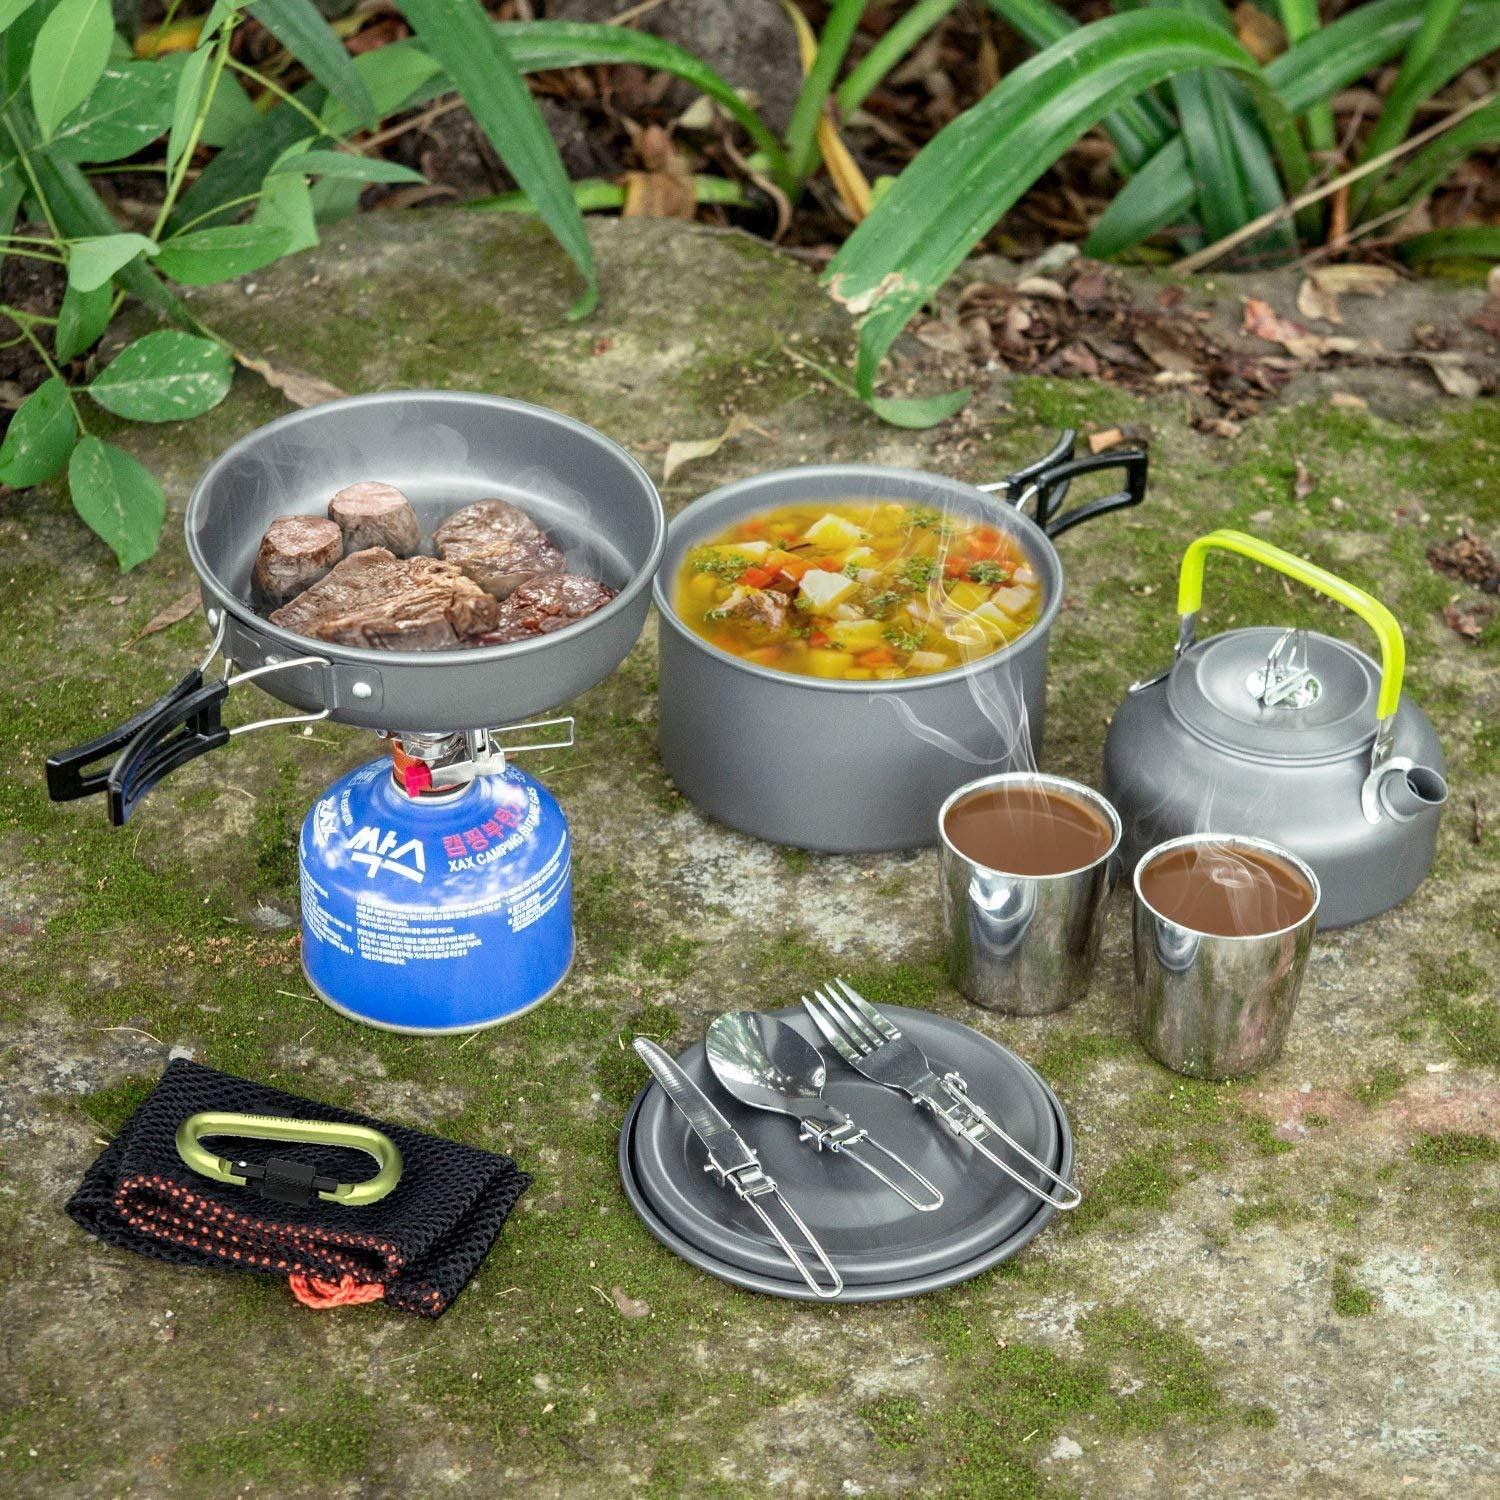 ZMEETY Camping Ustensiles De Camping Camping en Plein Air Set De Camping en Plein Air Ensemble pour Casserole Et Poêle 1-3 Personnes Wild BBQ Grill Orange